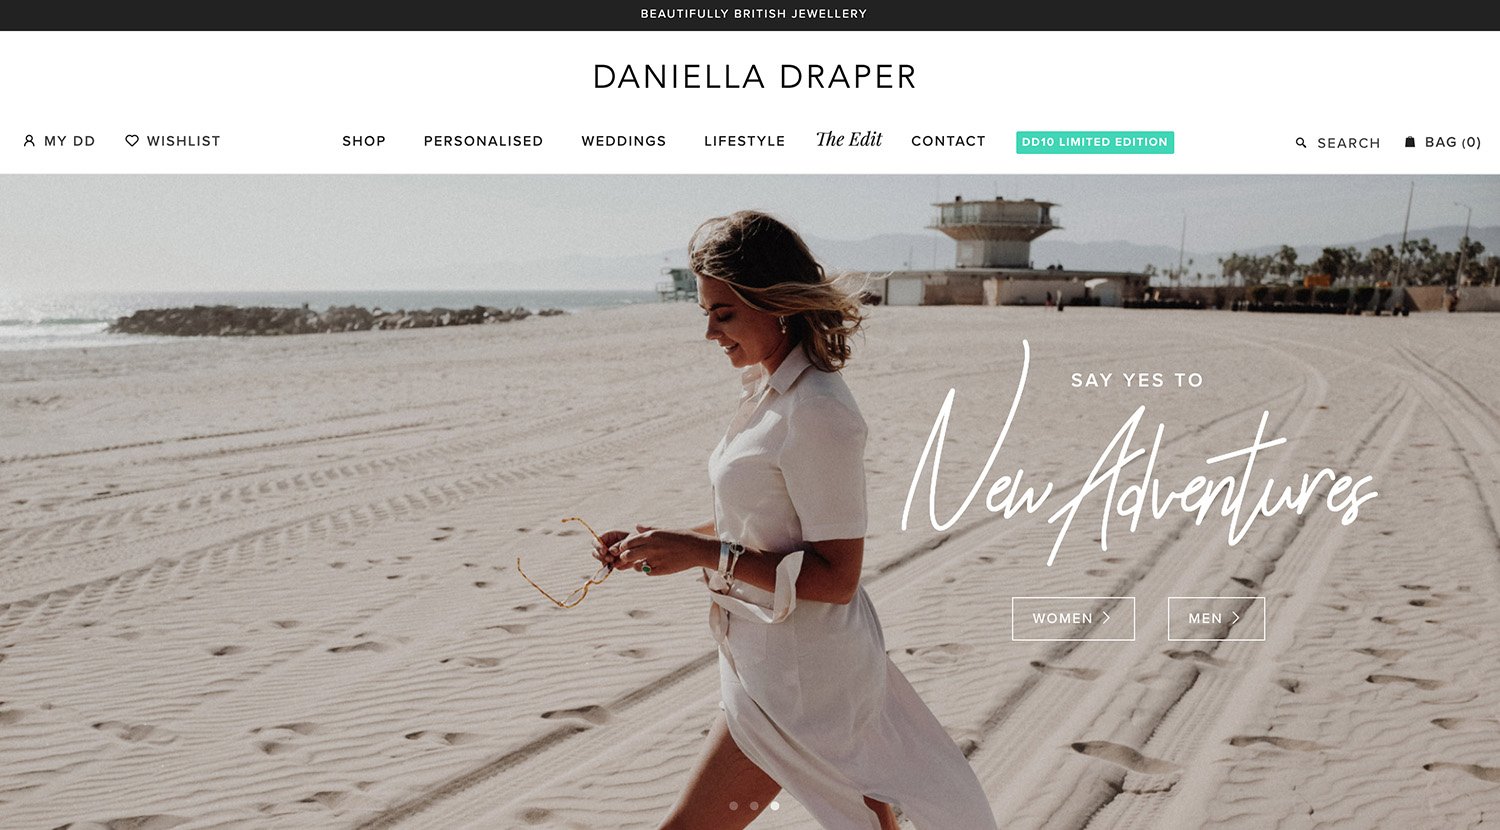 daniella draper jewellery website.jpg